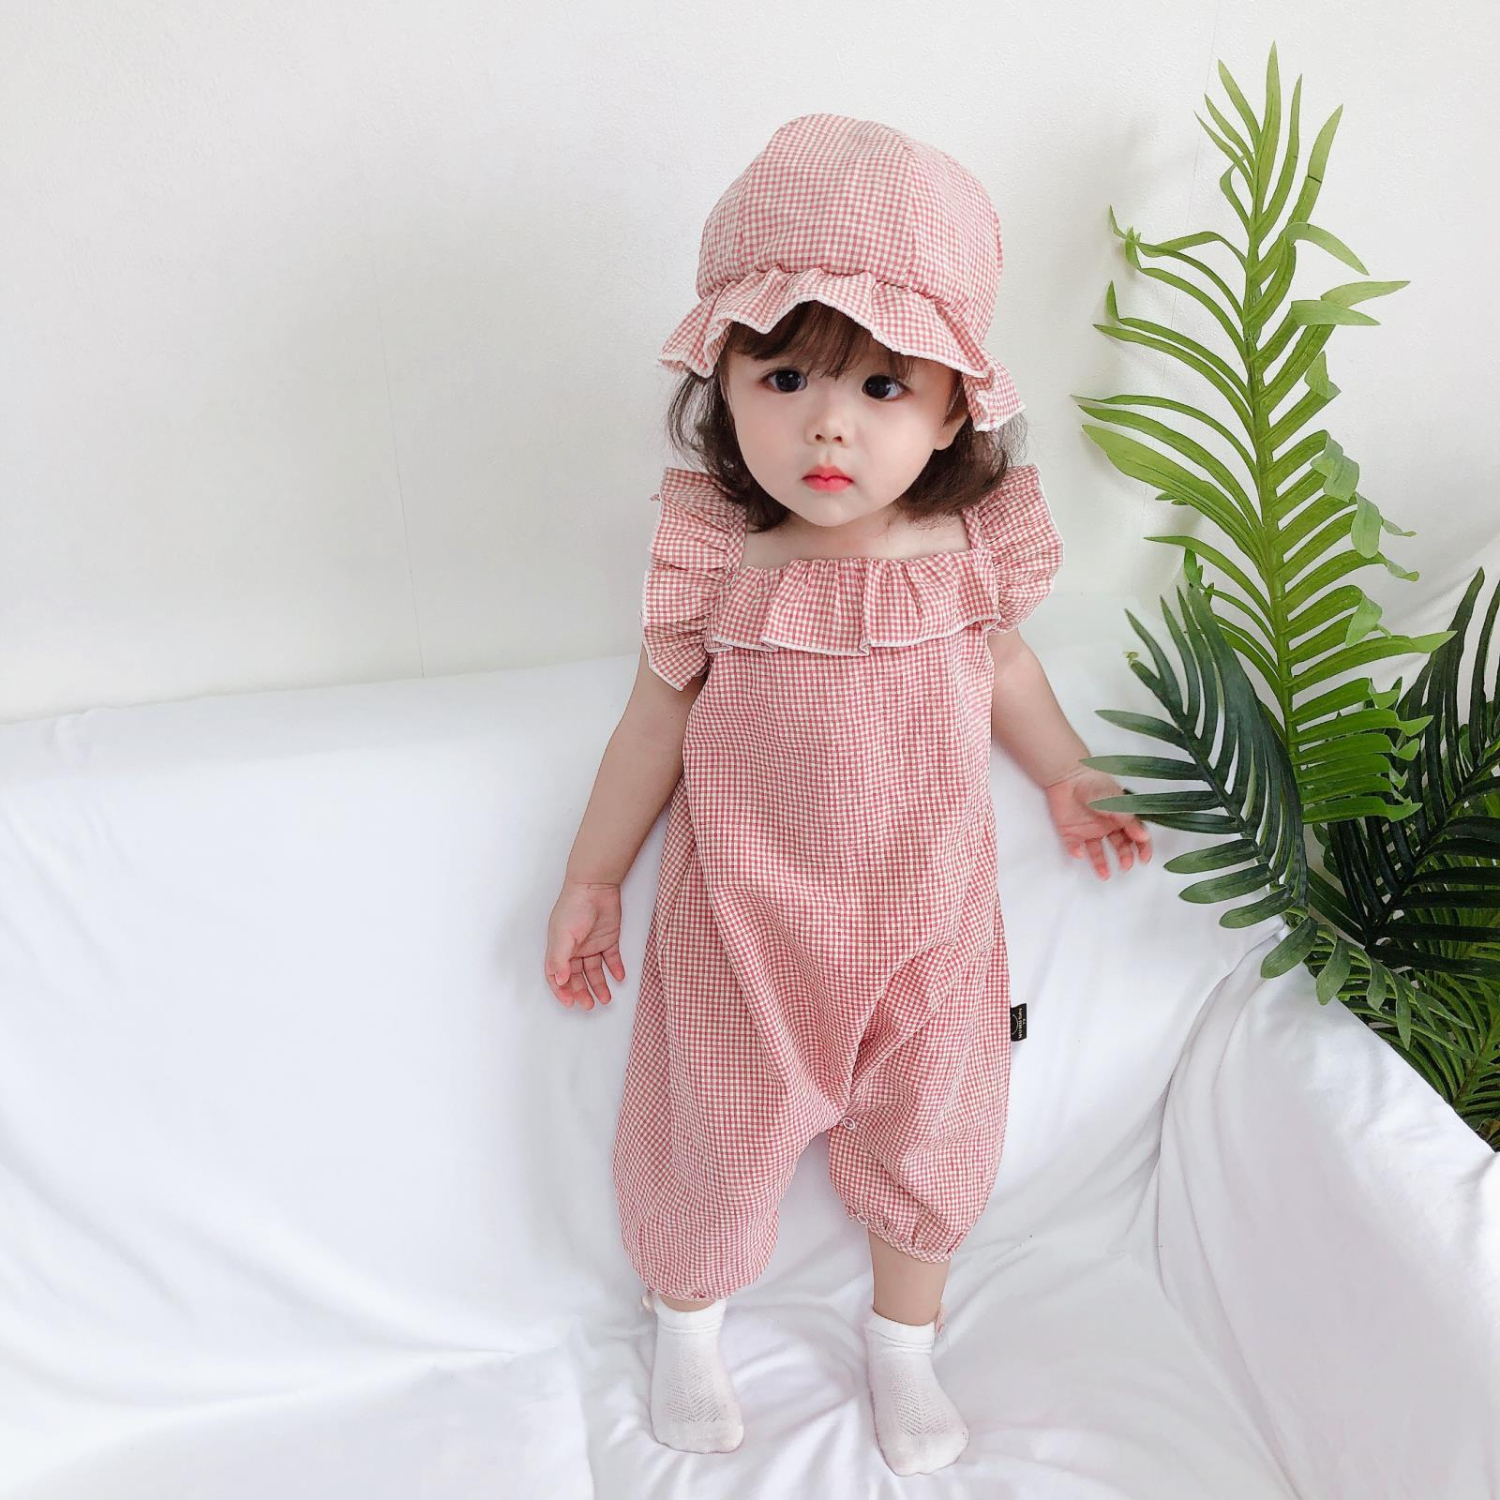 New Cute Jumpsuit Rompers Ruffle Summer Cotton Princess Toddler Clothes Sunsuit Beach Plaid Lovely Infant Newborn Baby Outfits